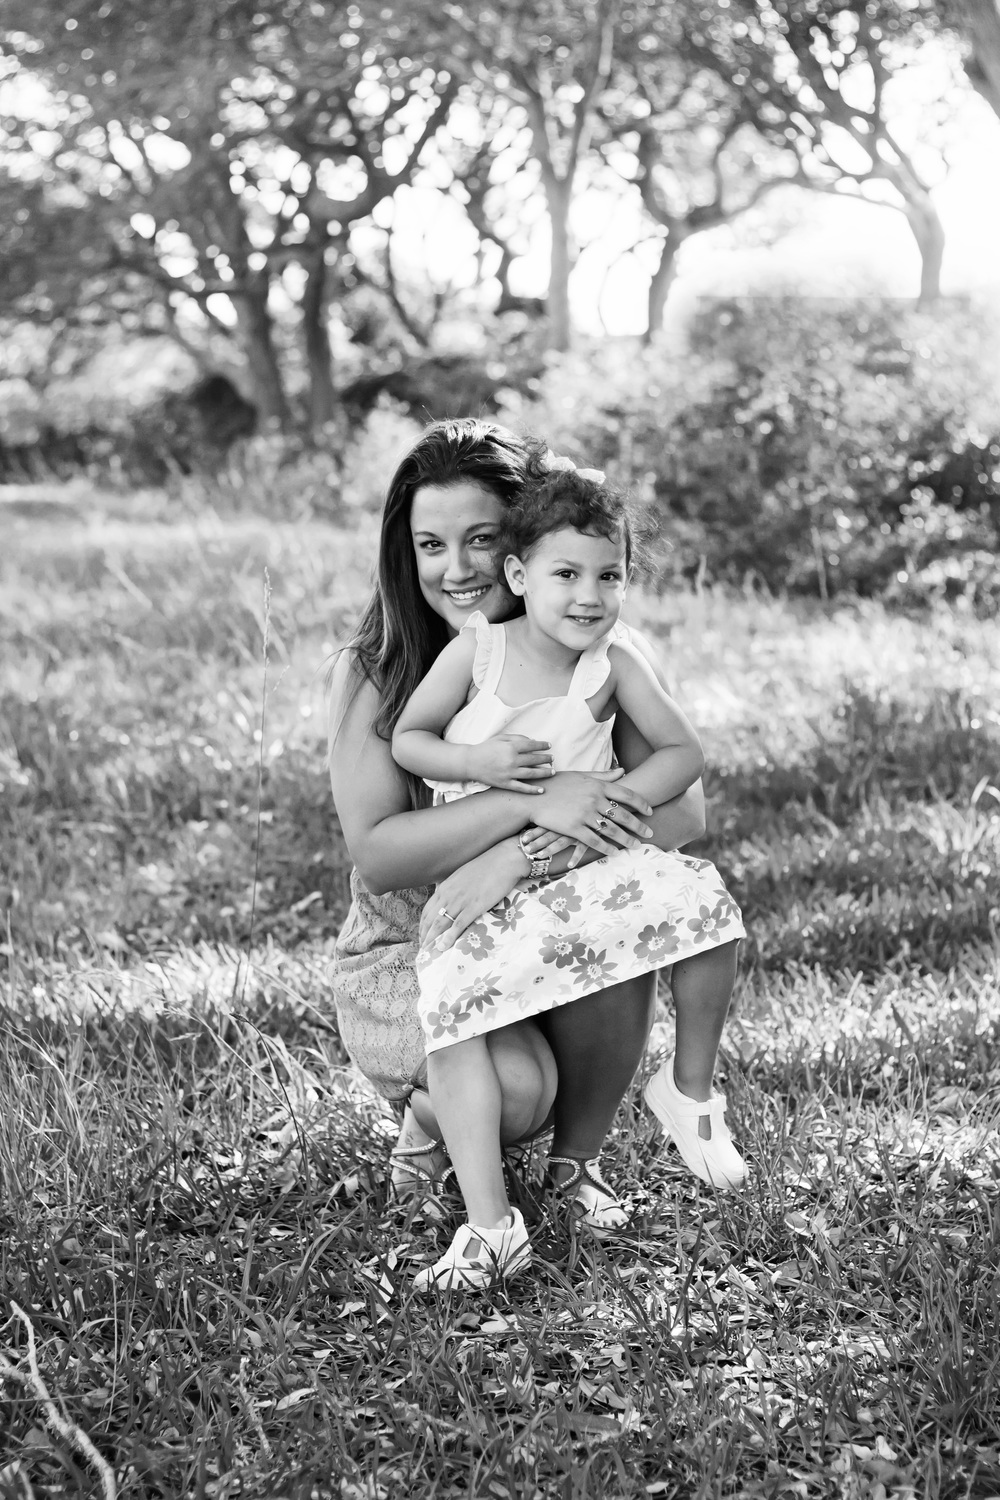 TIFFANY_ABRUZZO_PHOTOGRAPHY_ENGAGEMENT_24bw.jpg